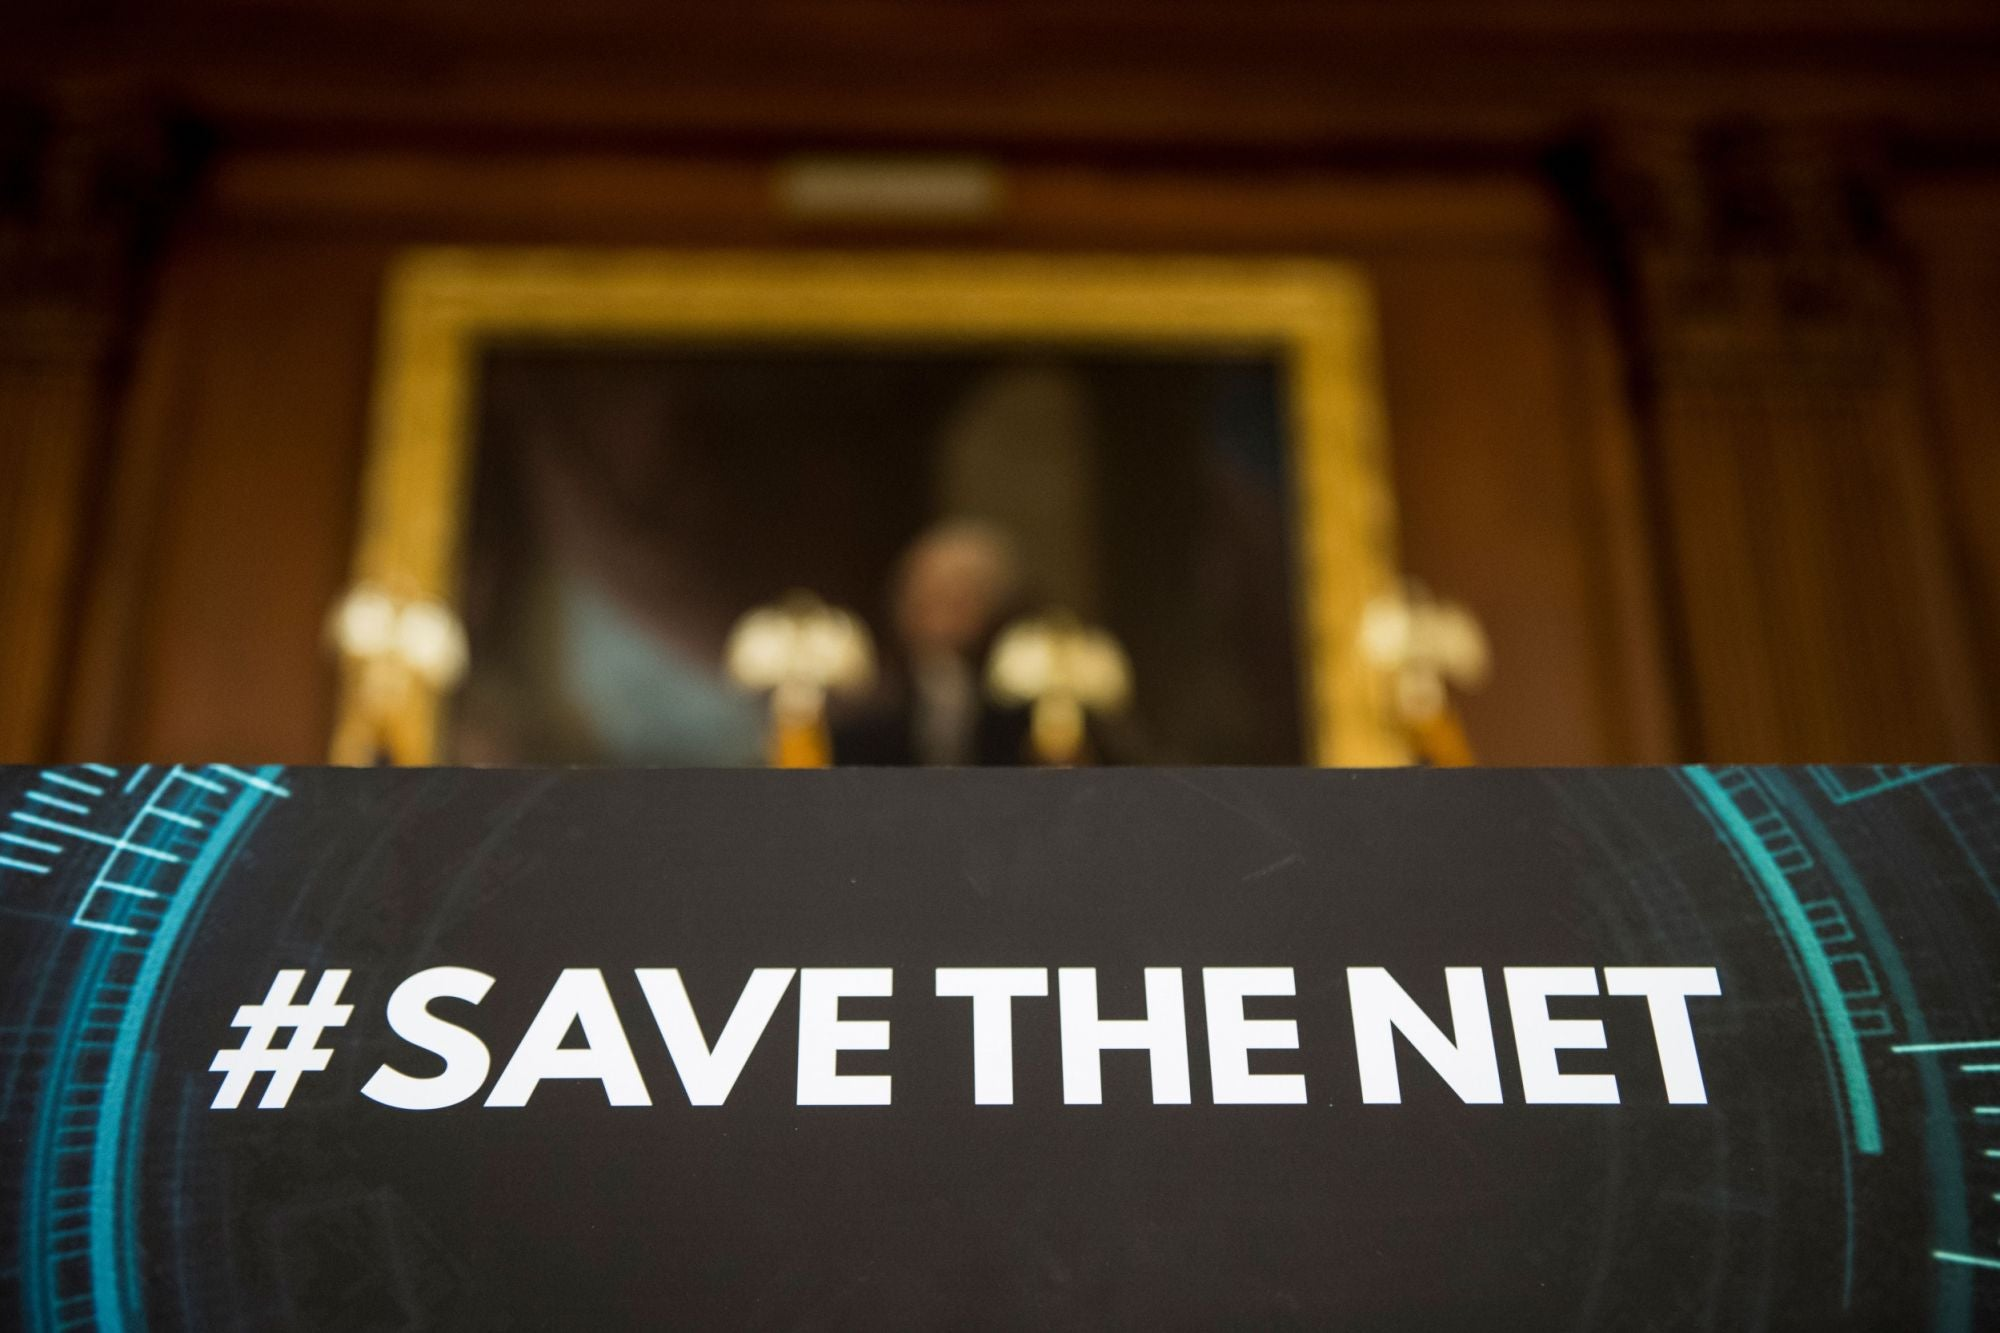 entrepreneur.com - Peter Banerjea - Net neutrality: Will Congress Save Internet Freedom?